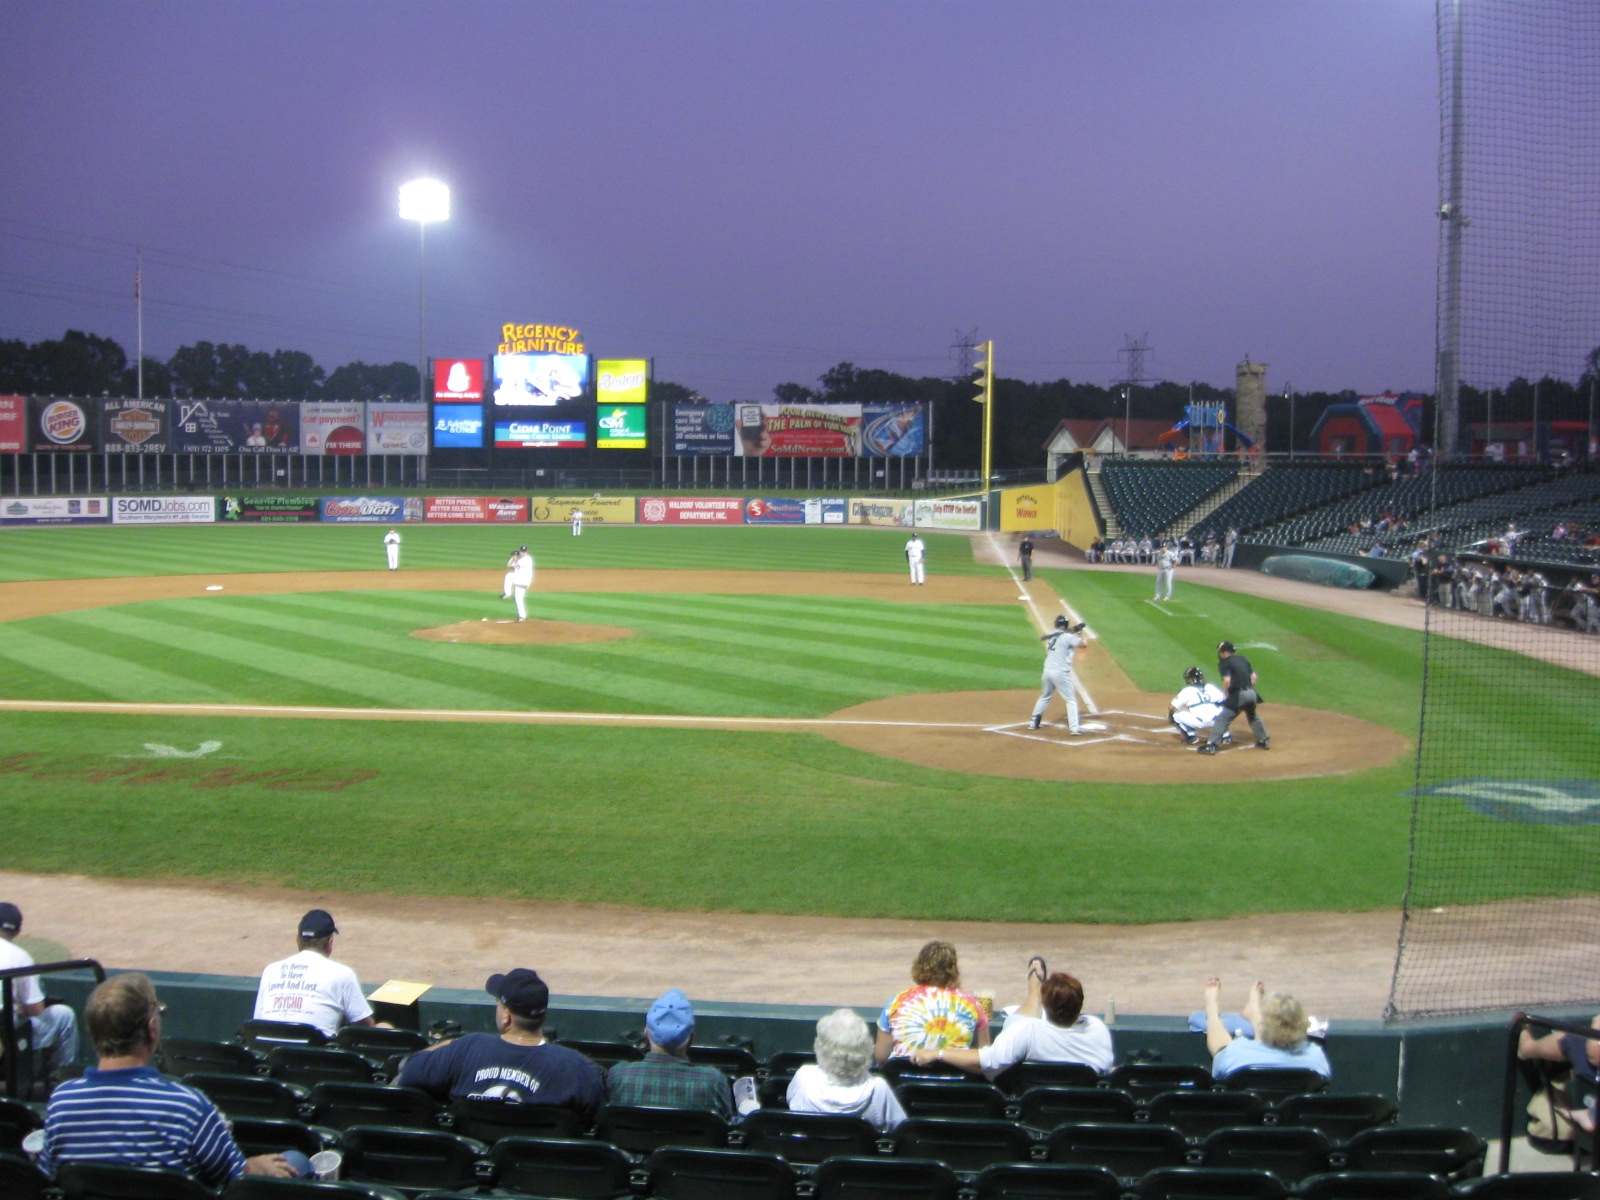 Beautiful Regency Furniture Stadium 8